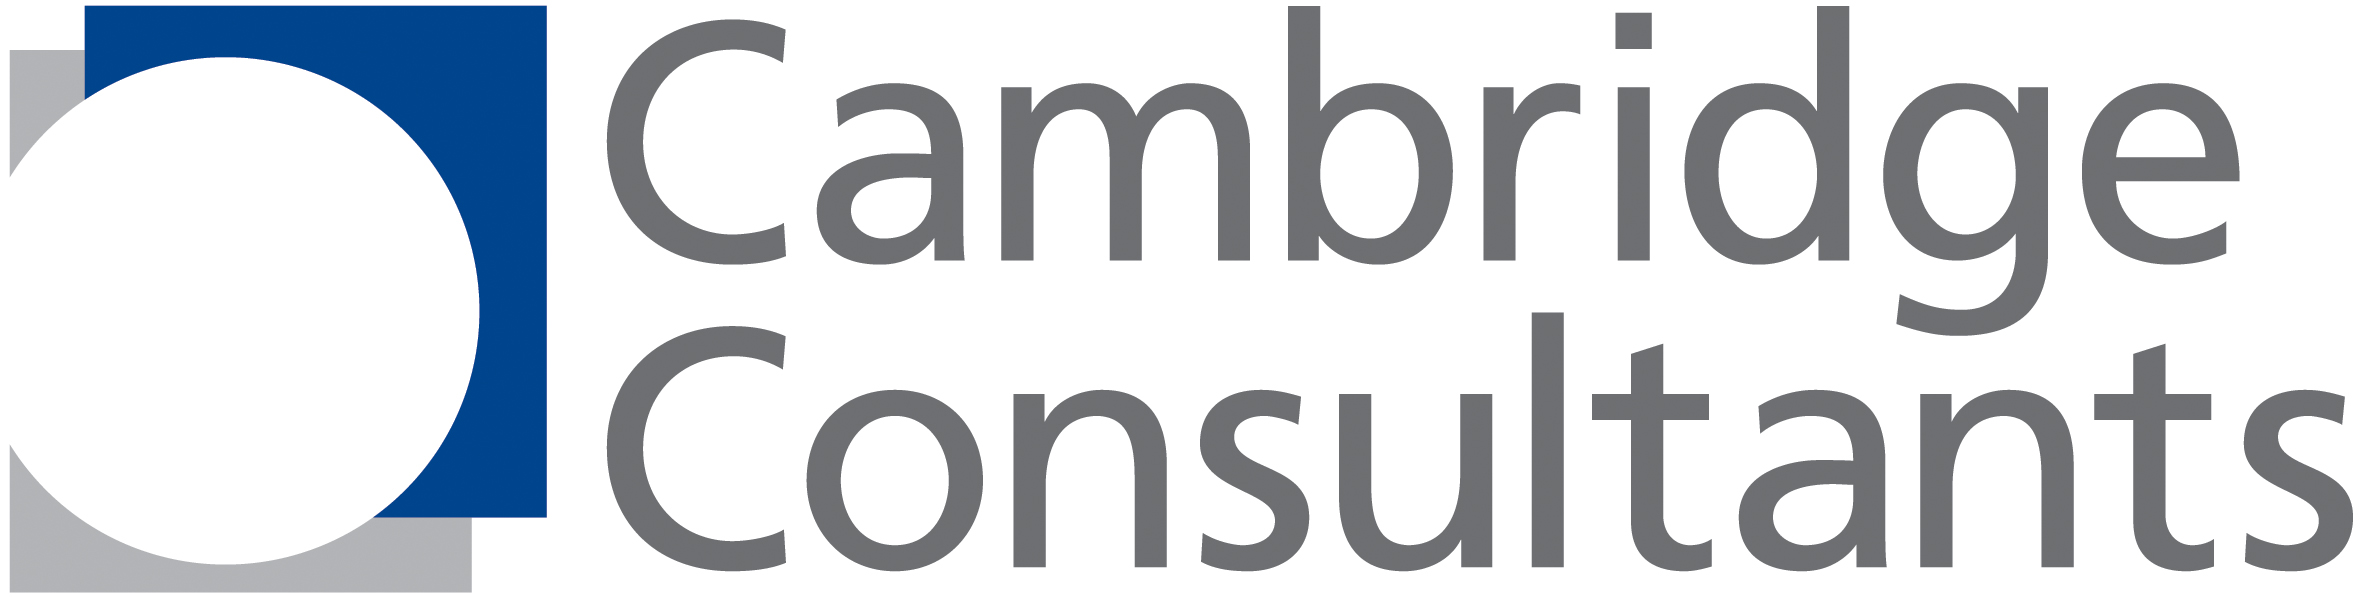 https://www.cambridgeconsultants.com/home